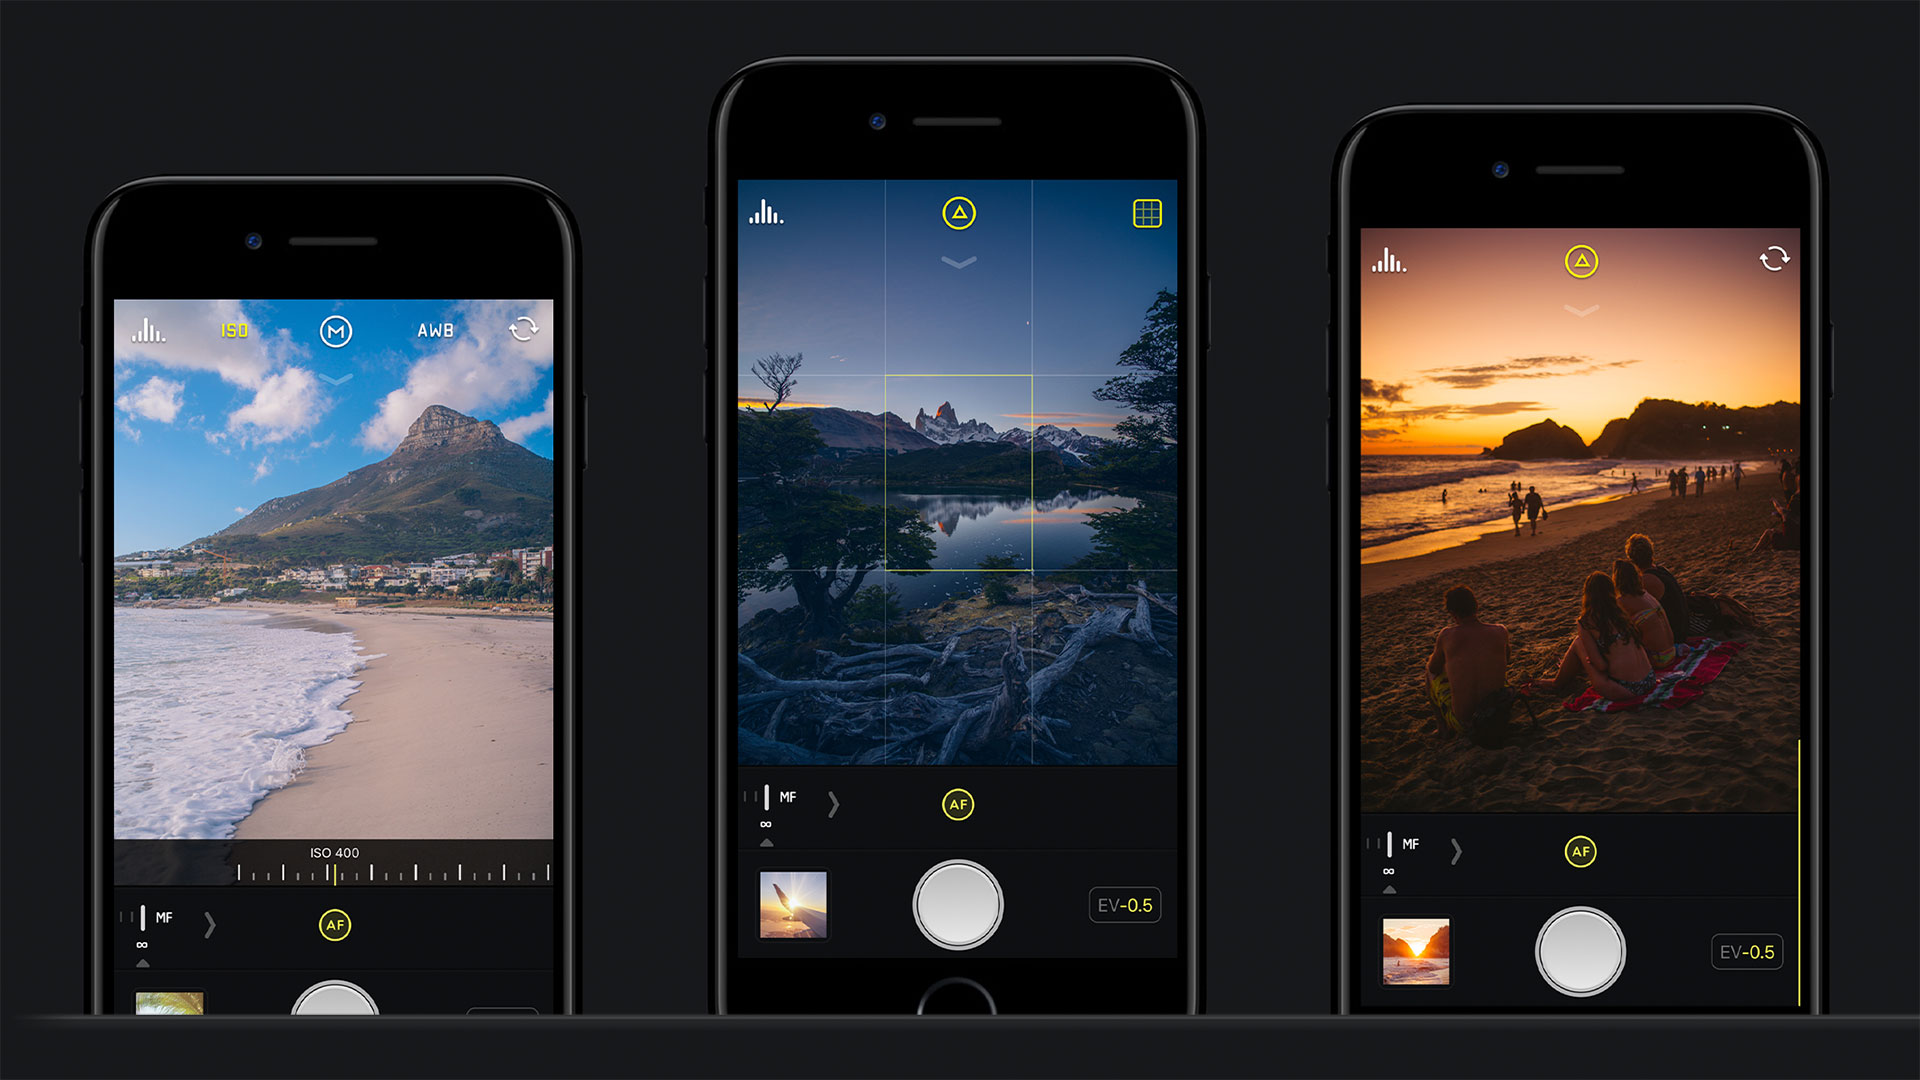 How to Copy Pictures from iPhone, Camera, or